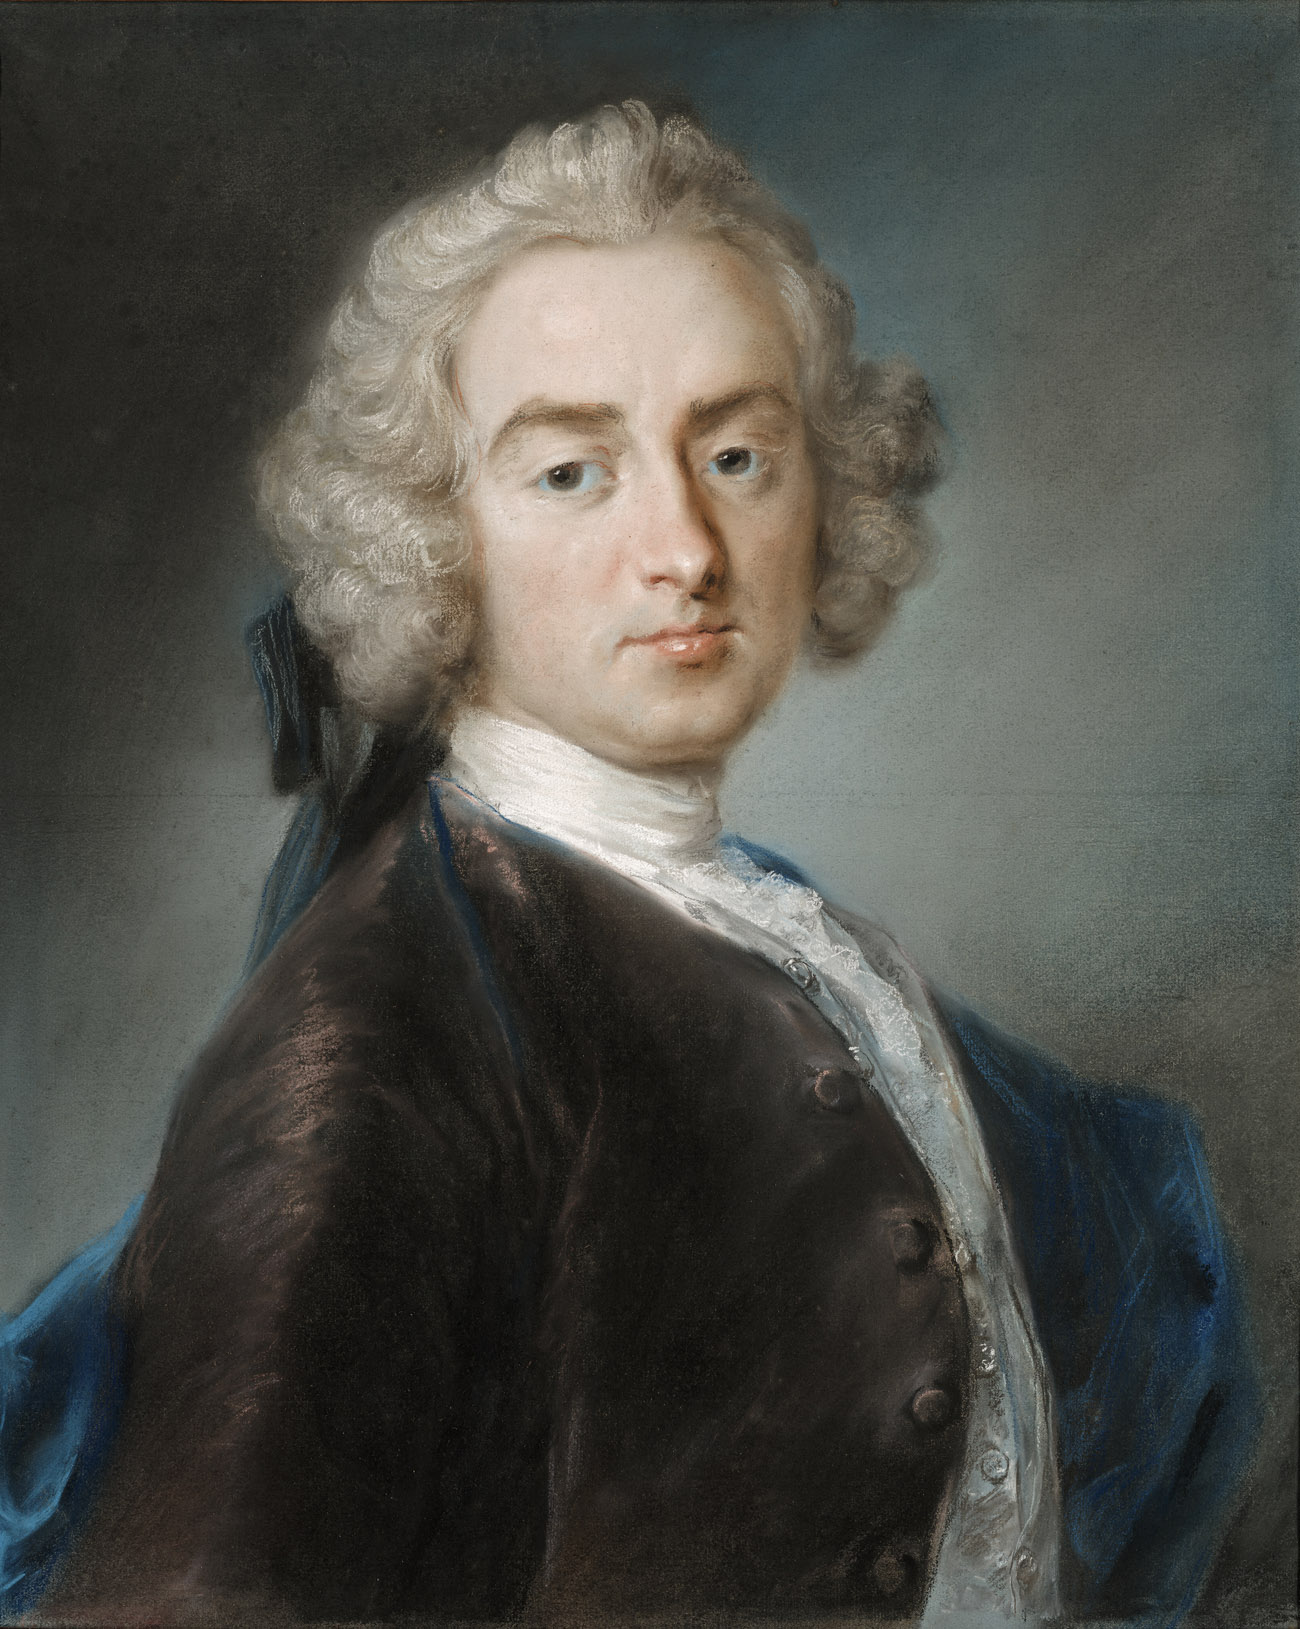 Sir James Gray, Second Baronet / Rosalba Carriera